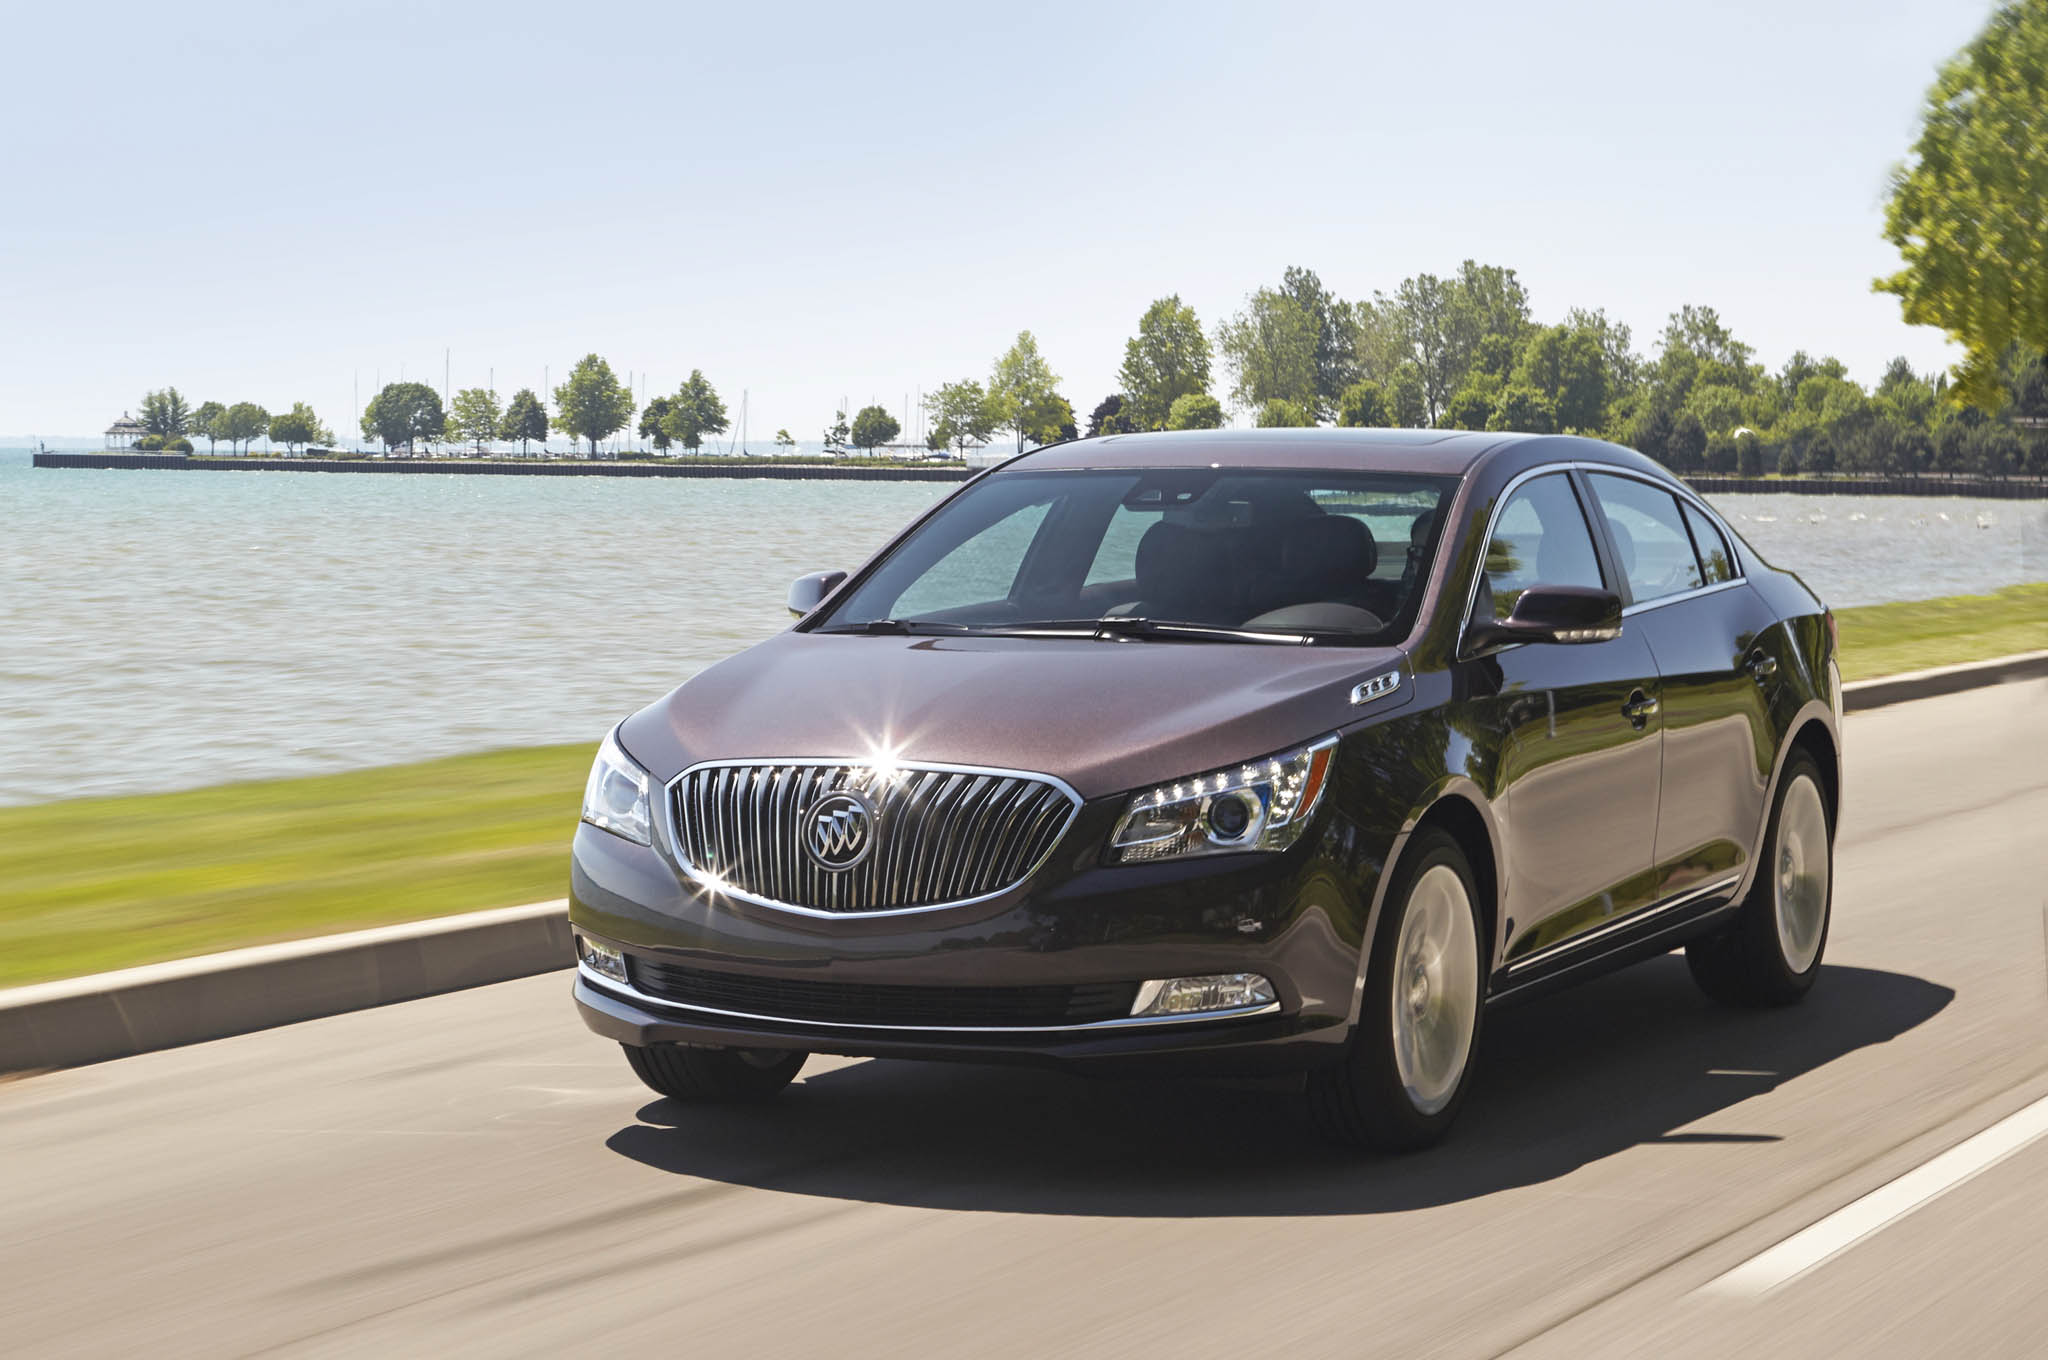 Buick LaCrosse: Driving on Grades